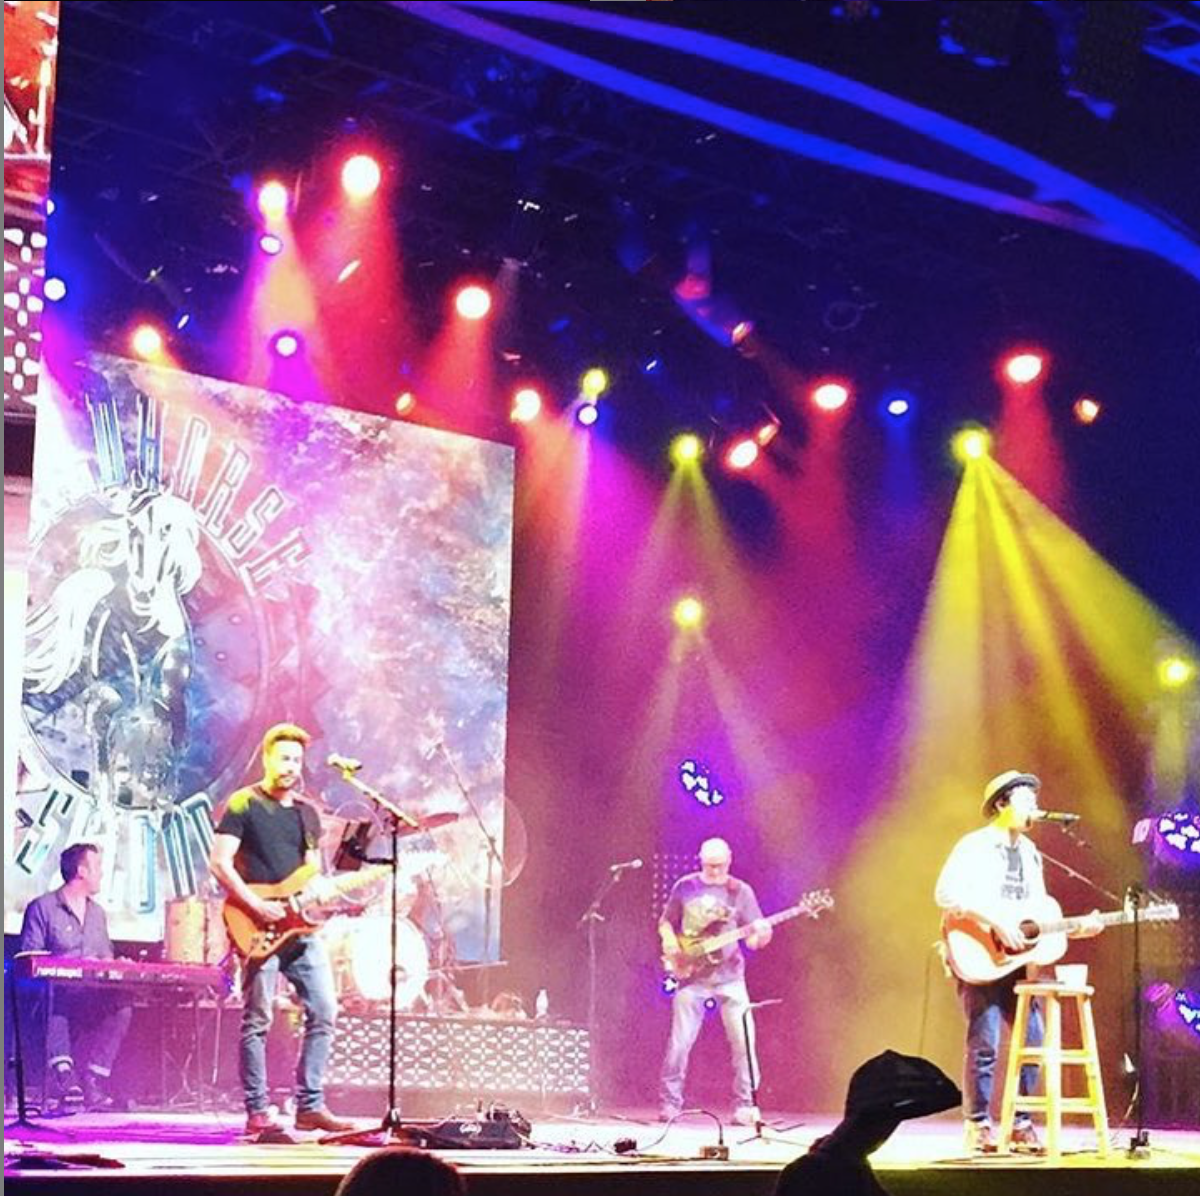 Live at the Wildhorse Saloon with Americana artist Jackson Lawrence.